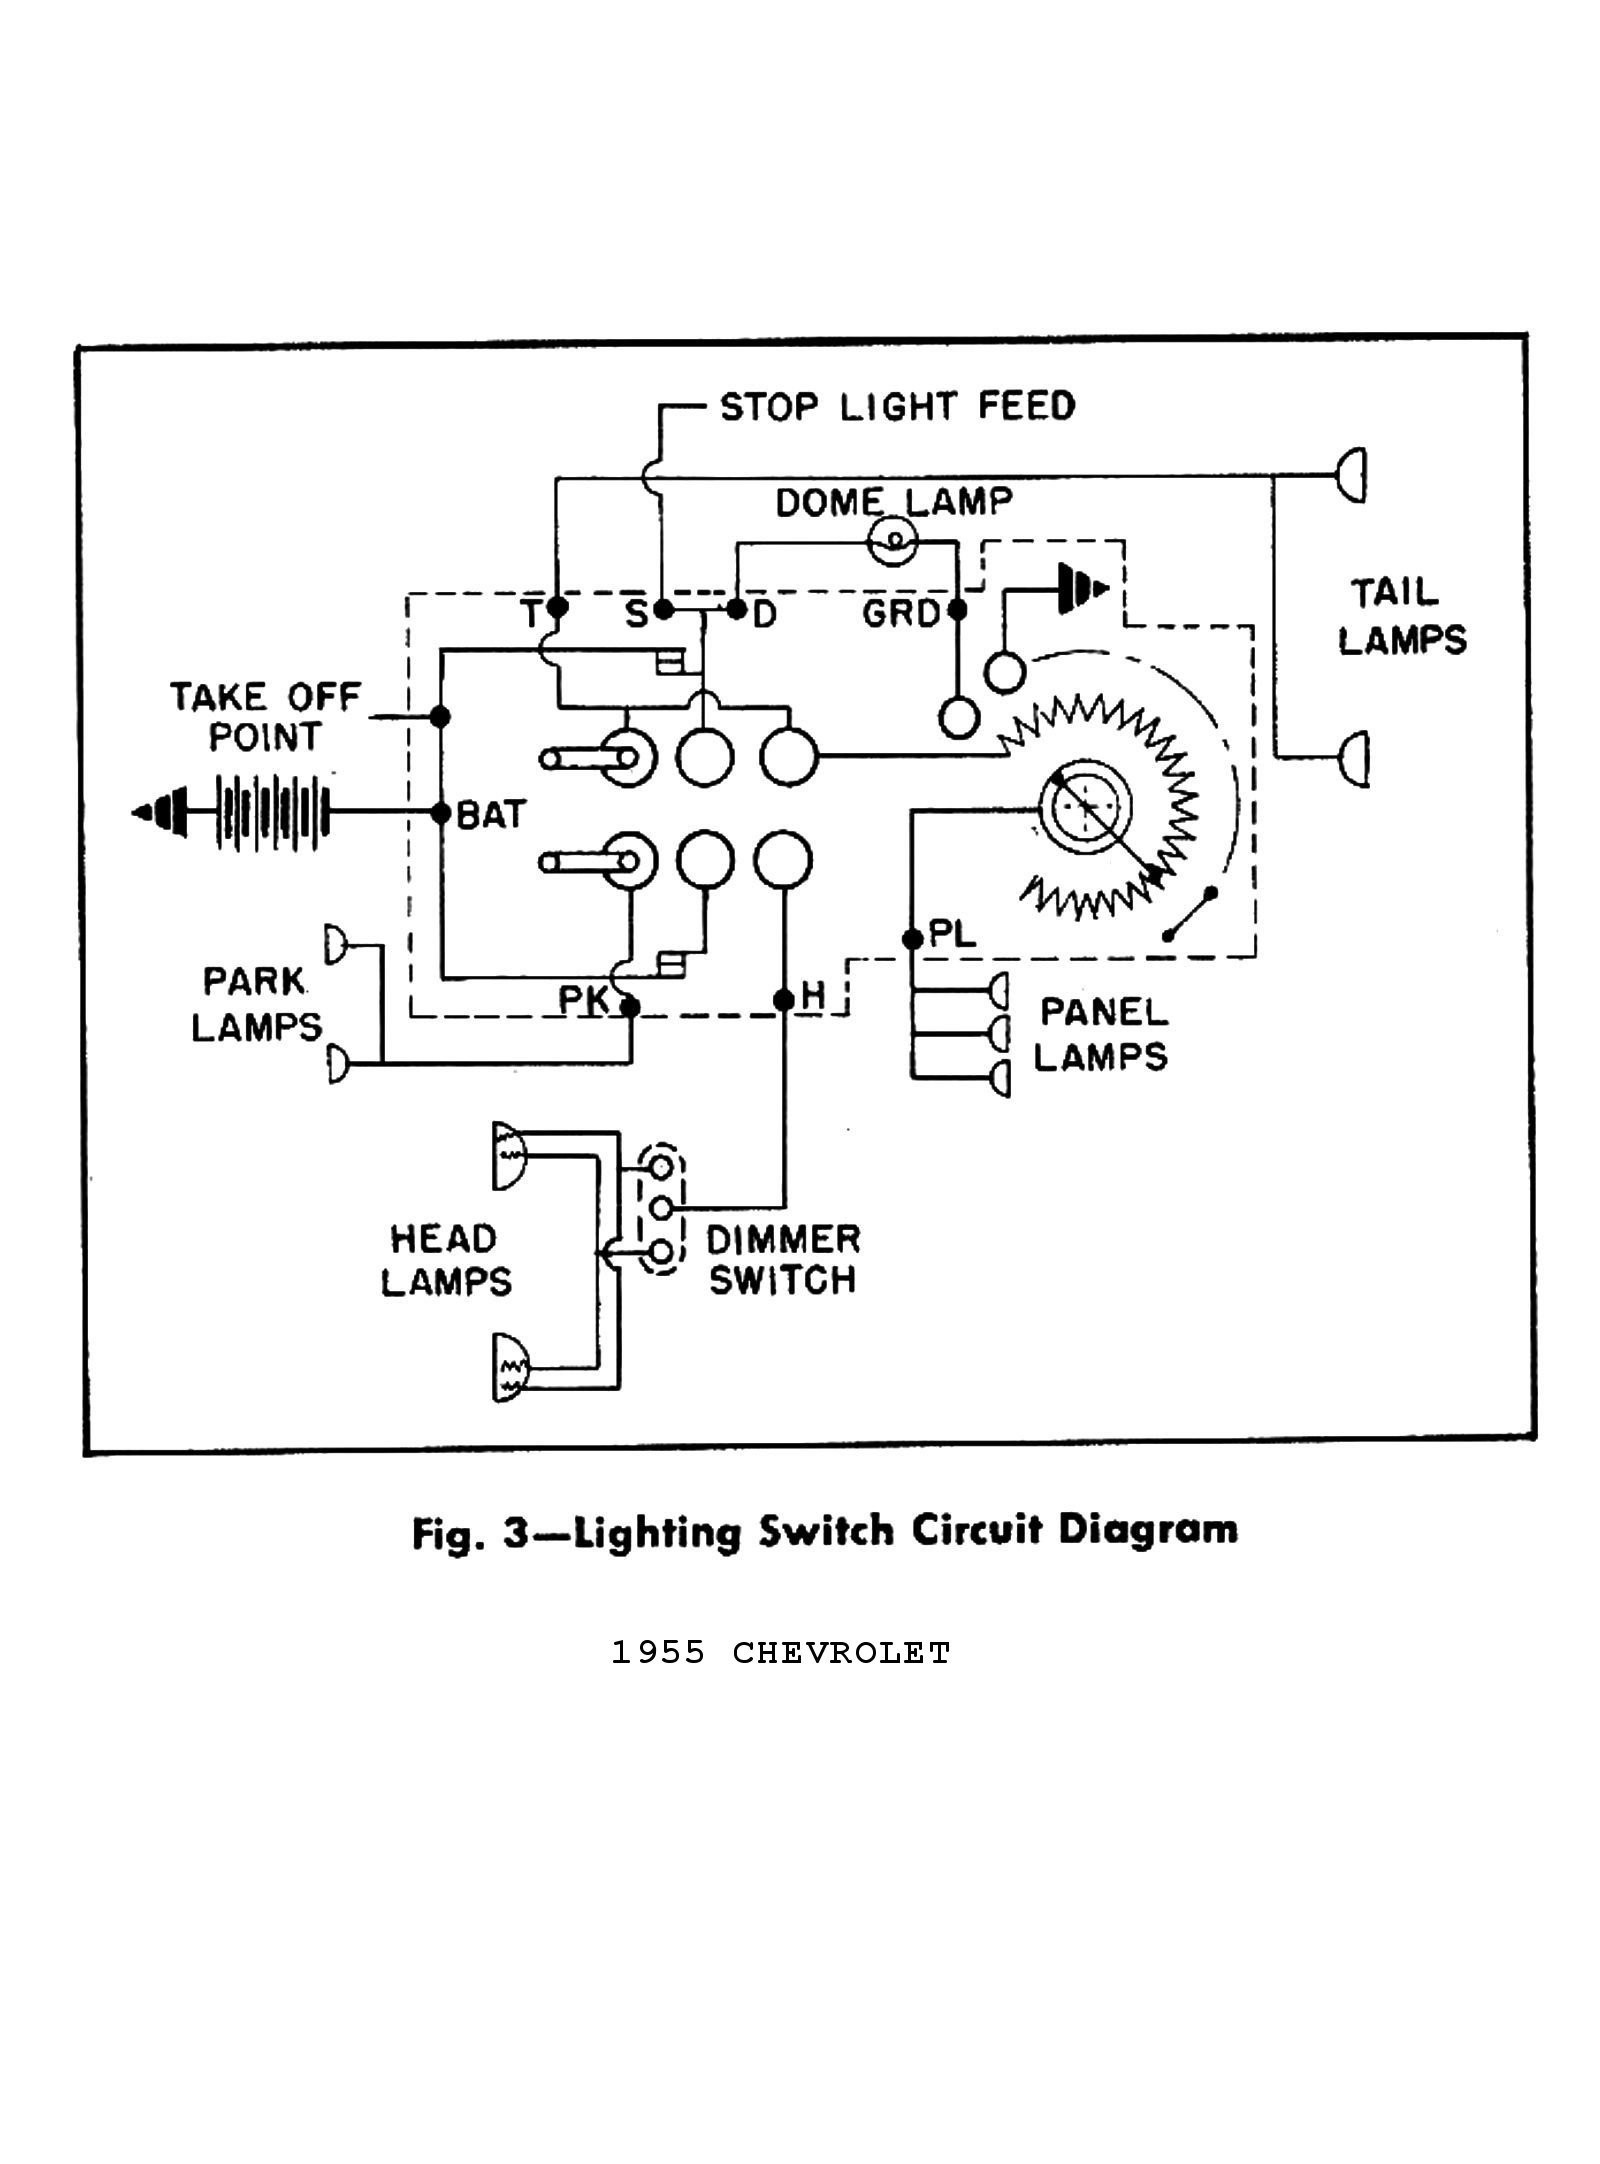 Ford Tractor Parts Diagram ford 3910 Wiring Diagram Another Blog About Wiring Diagram • Of Ford Tractor Parts Diagram